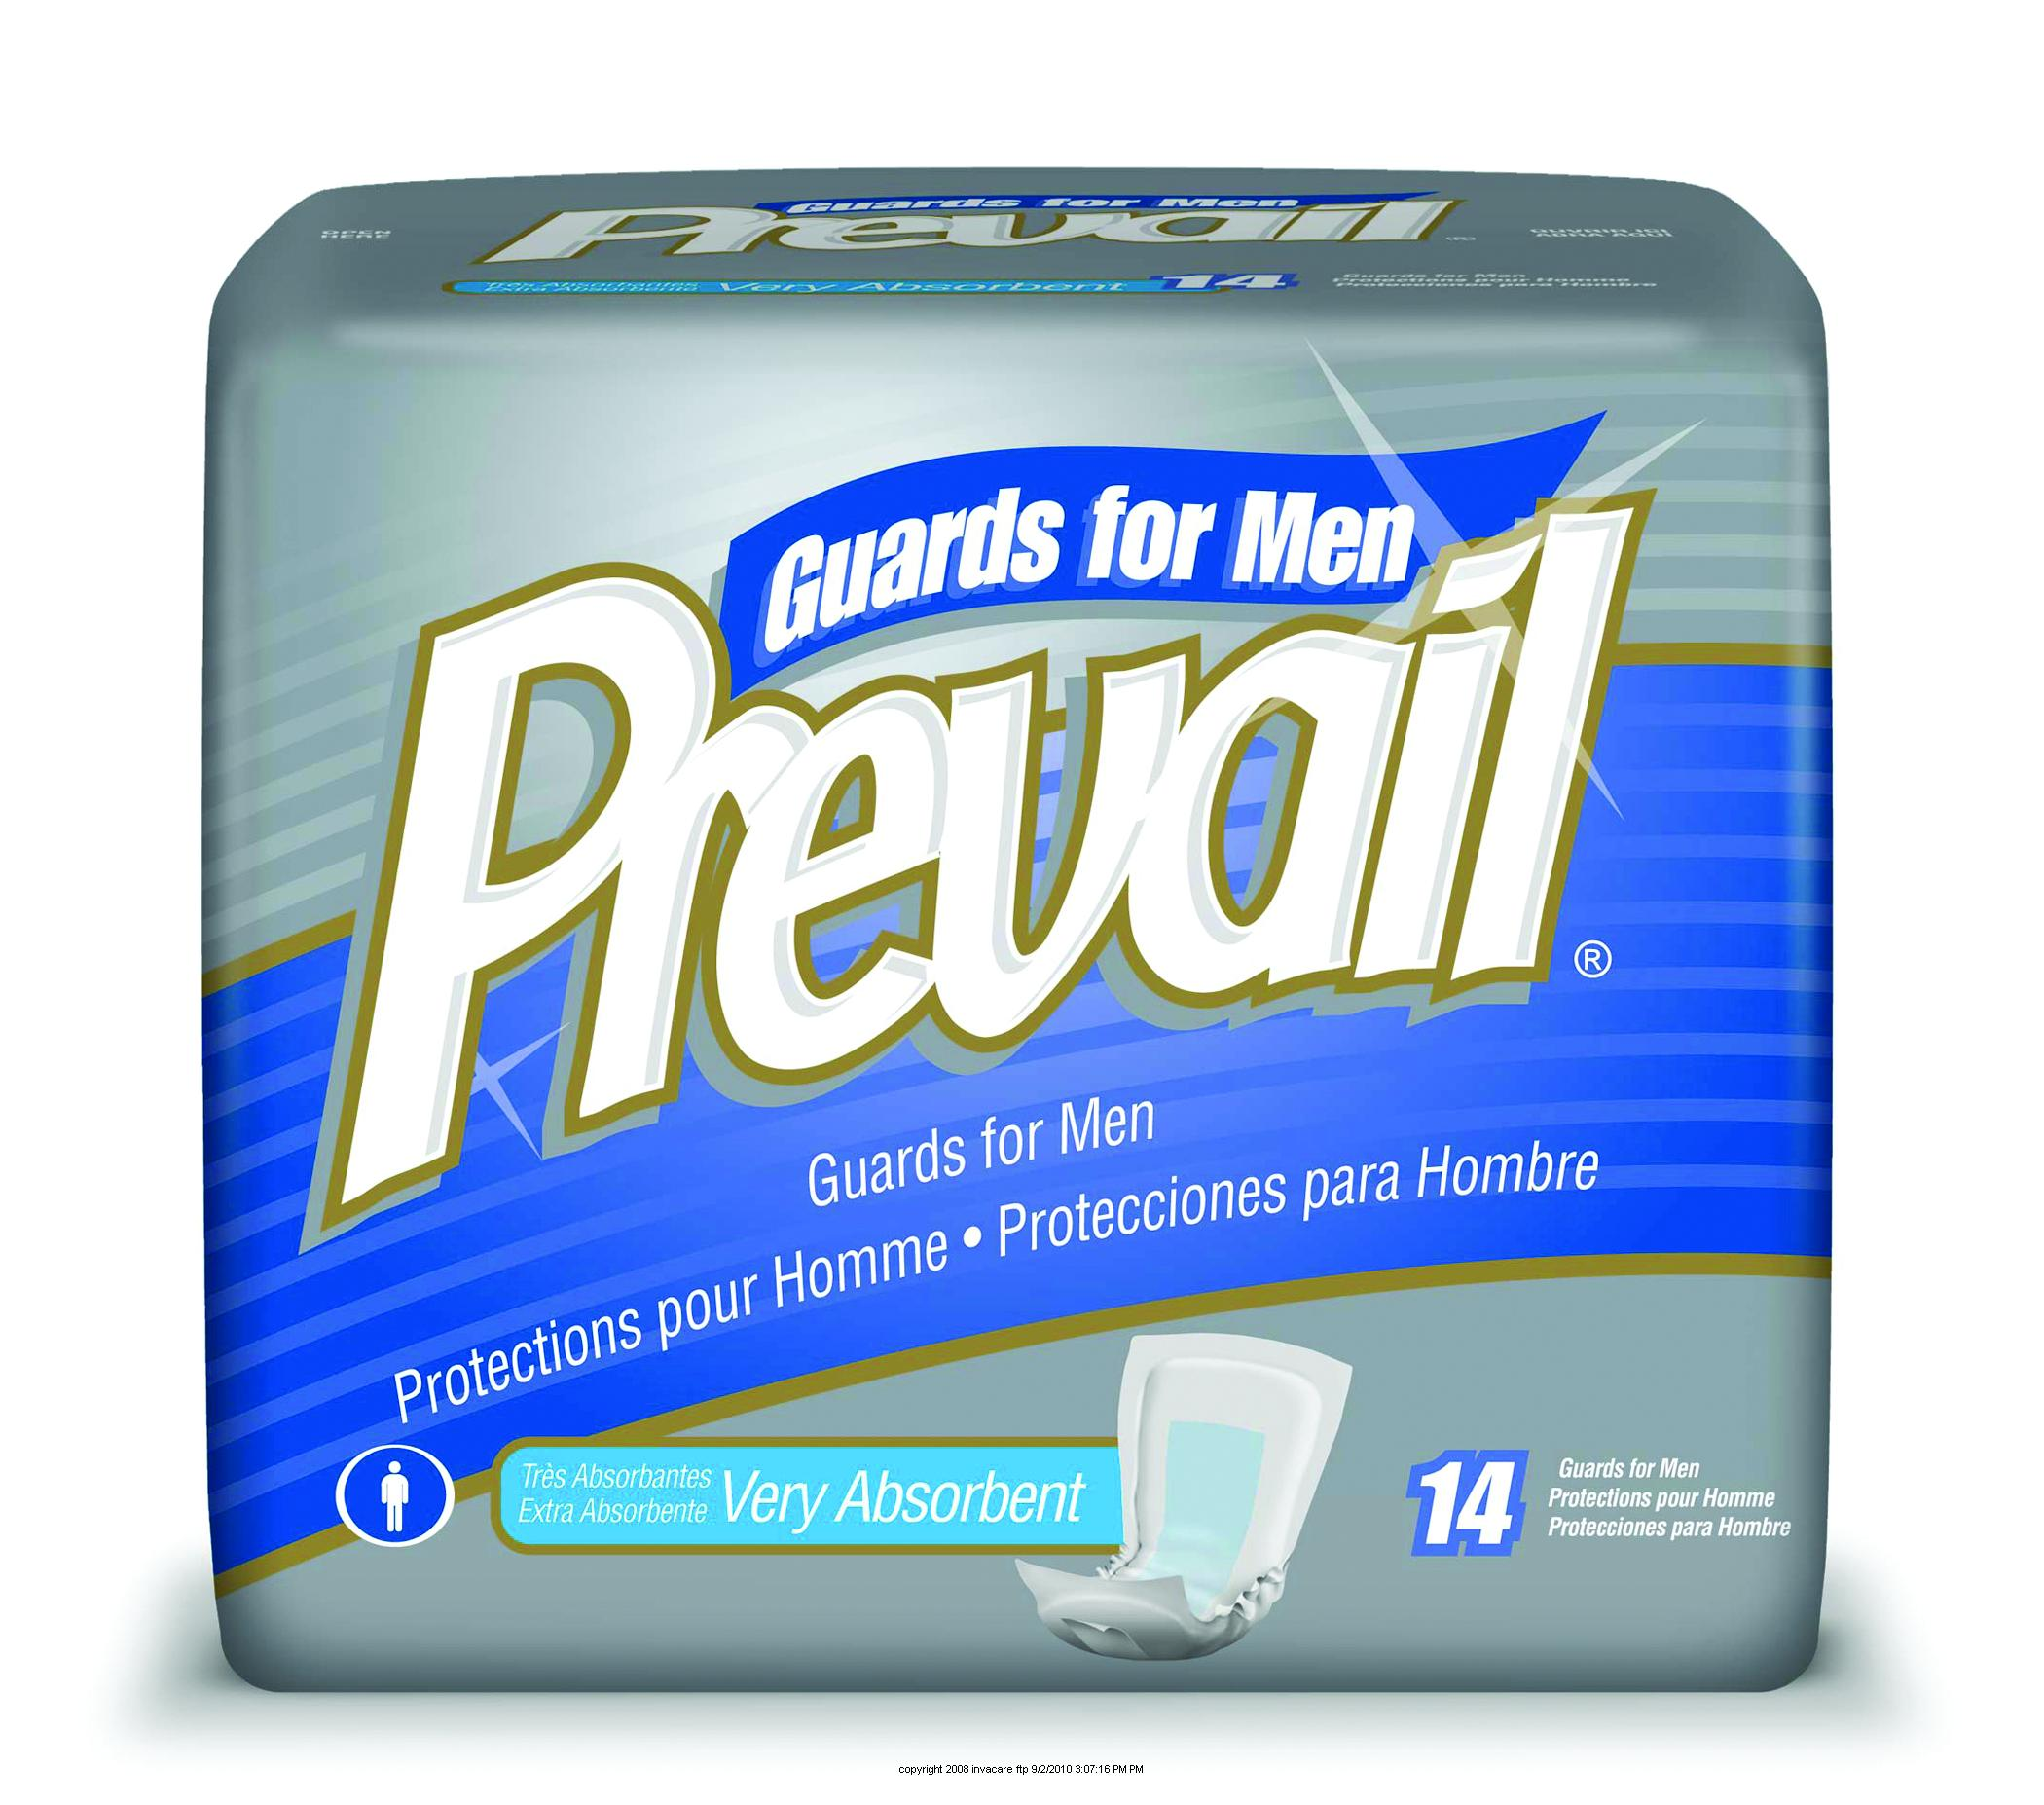 First Quality Prevail Male Guards